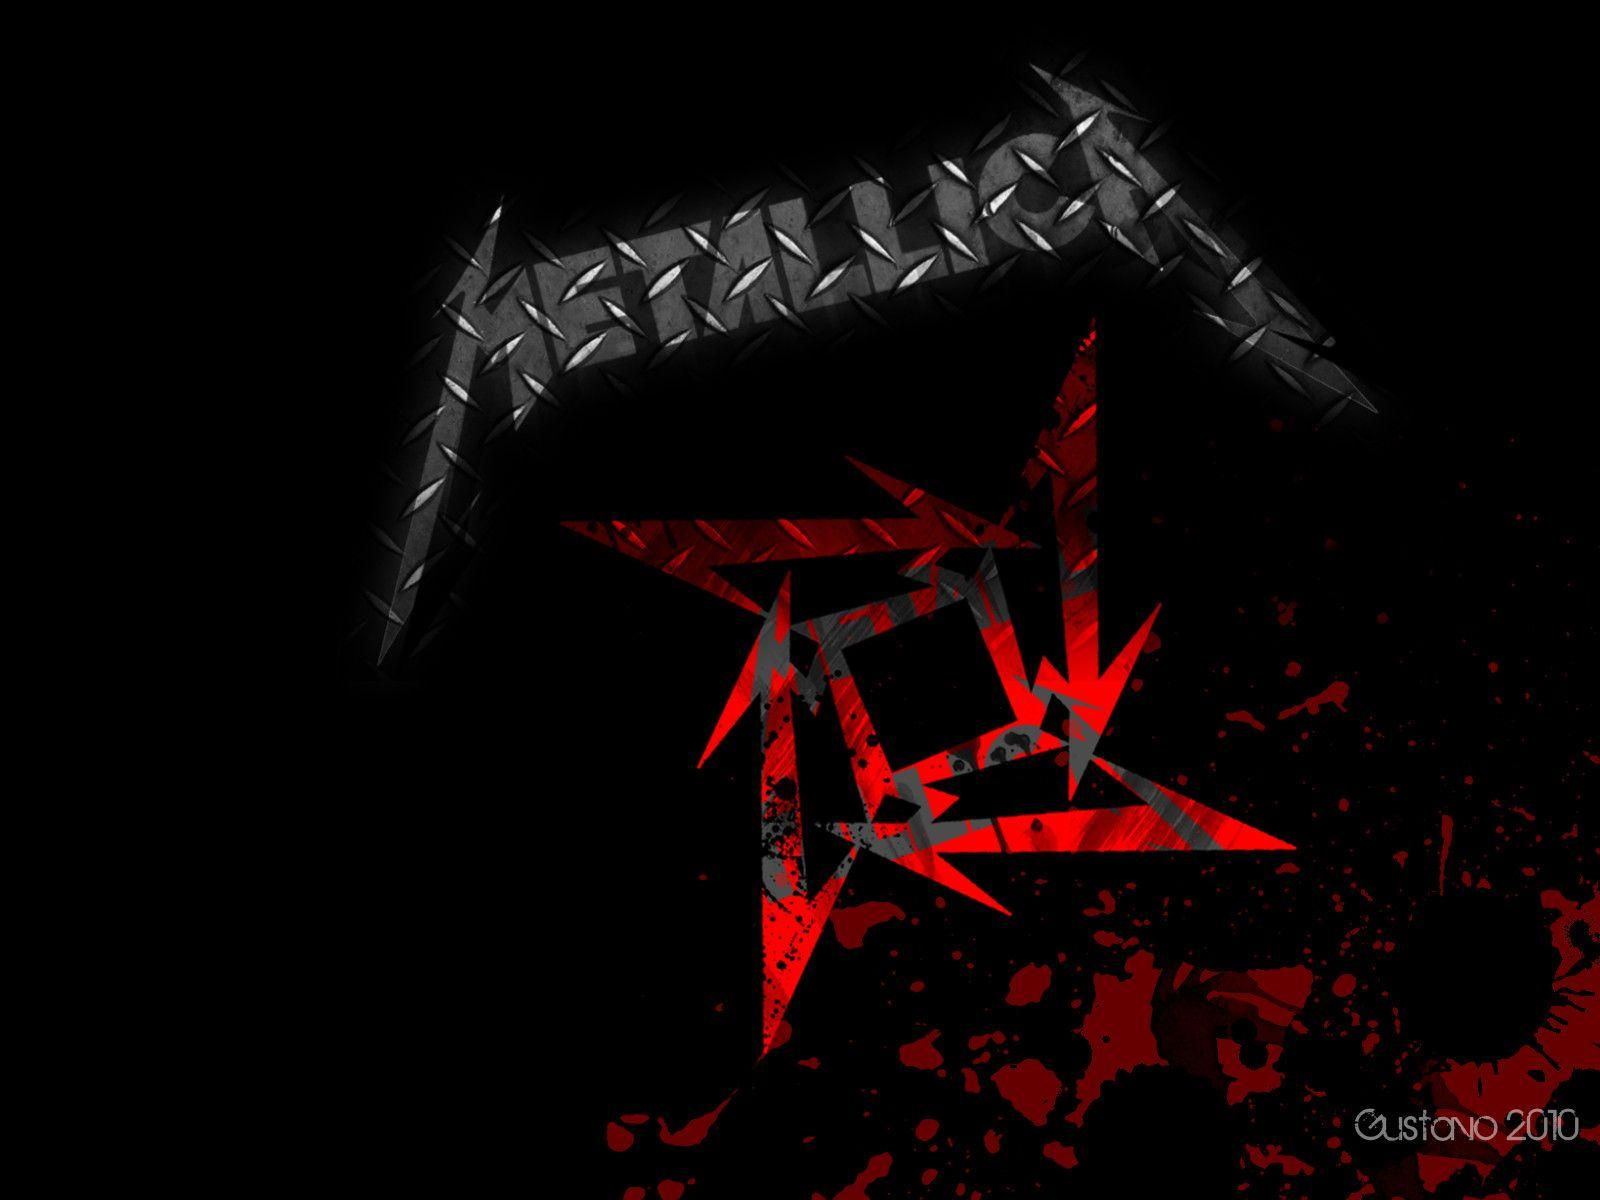 Metallica Wallpapers - Wallpaper Cave